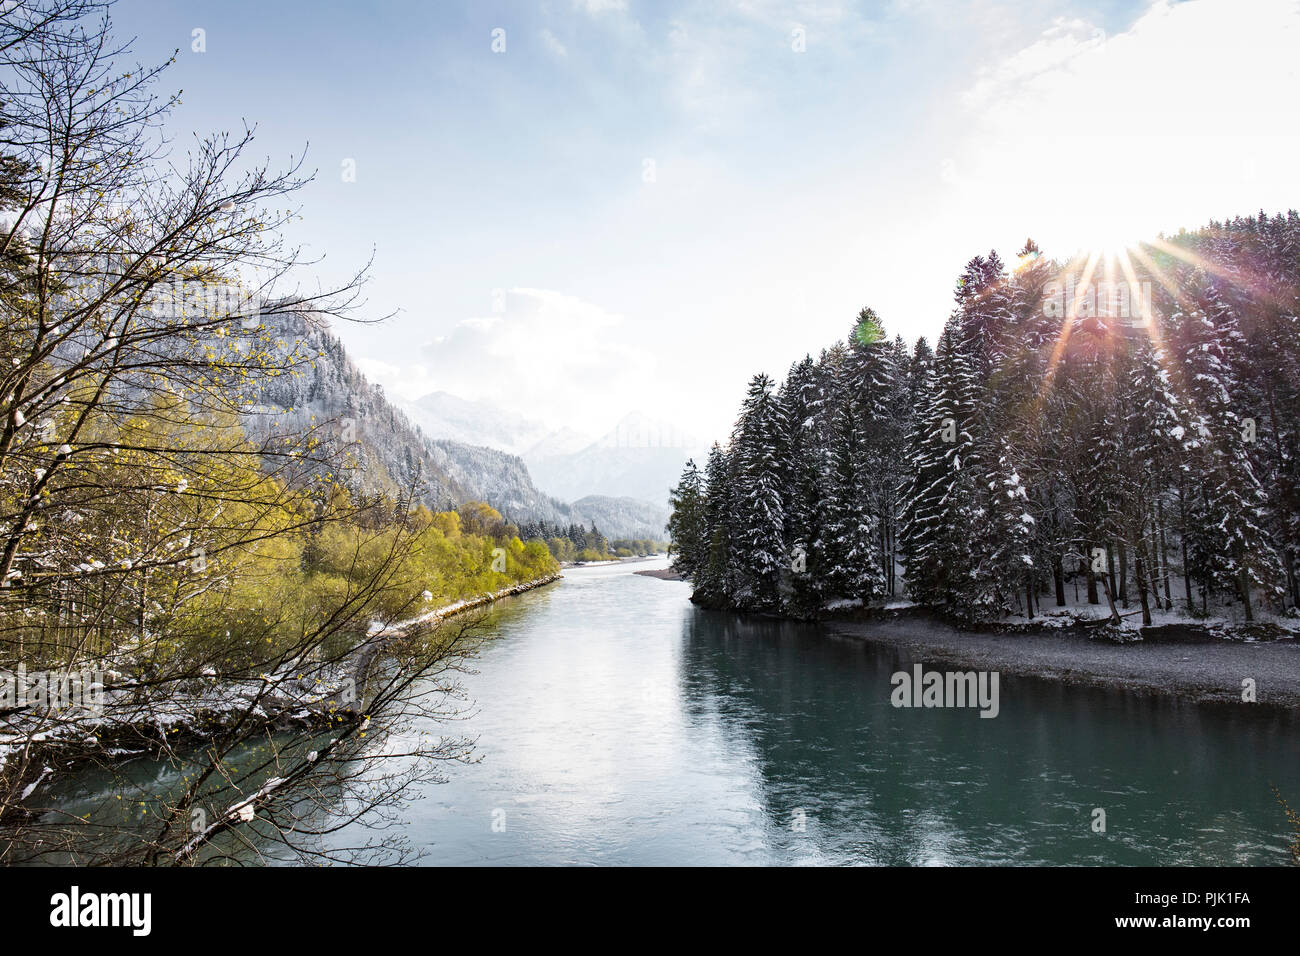 The transition between winter and spring at Lech river in Allgäu region - Stock Image